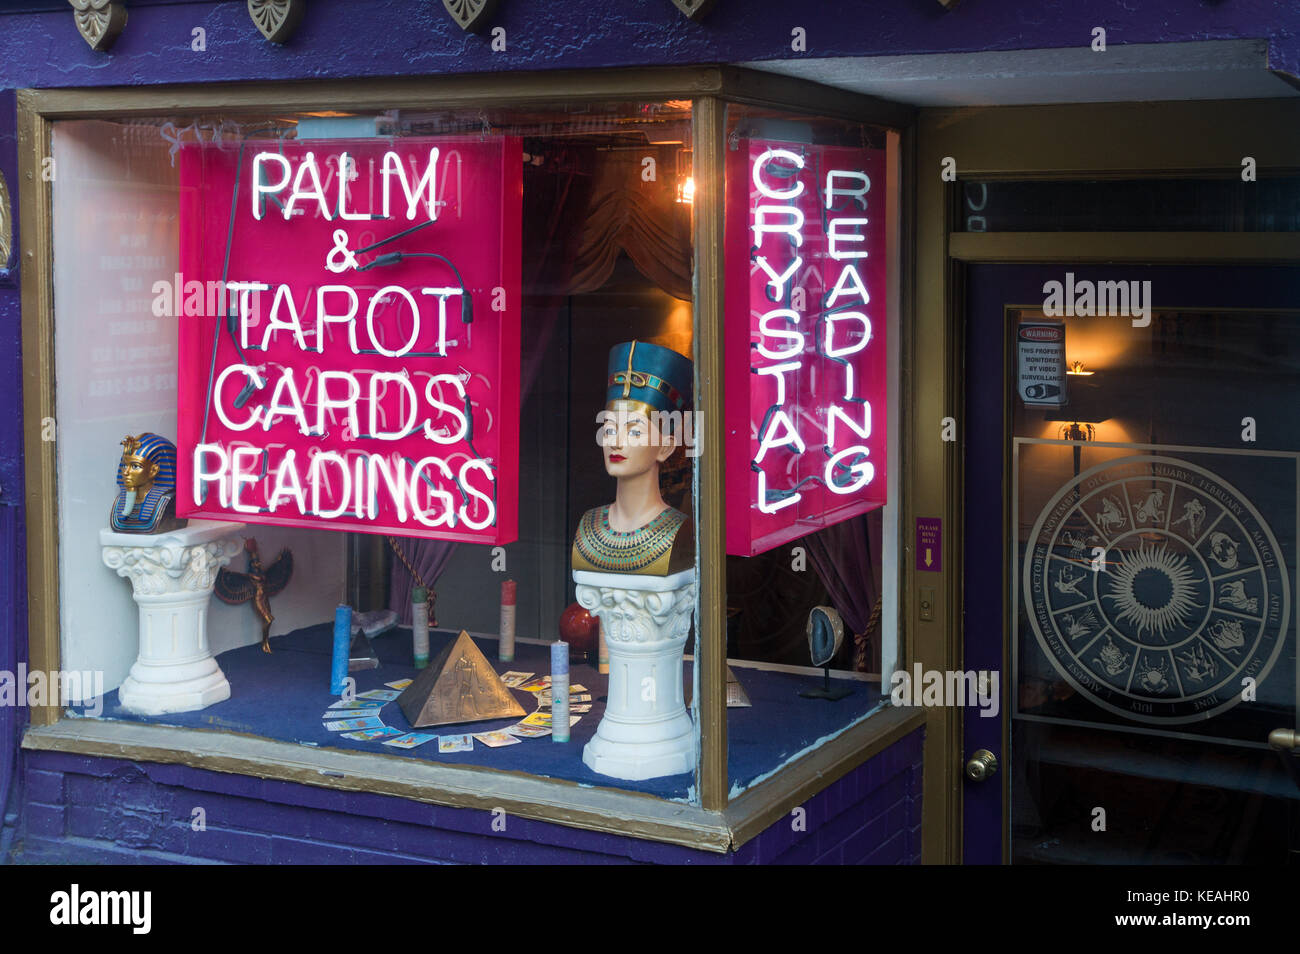 Palm & Tarot Card Readings - Stock Image